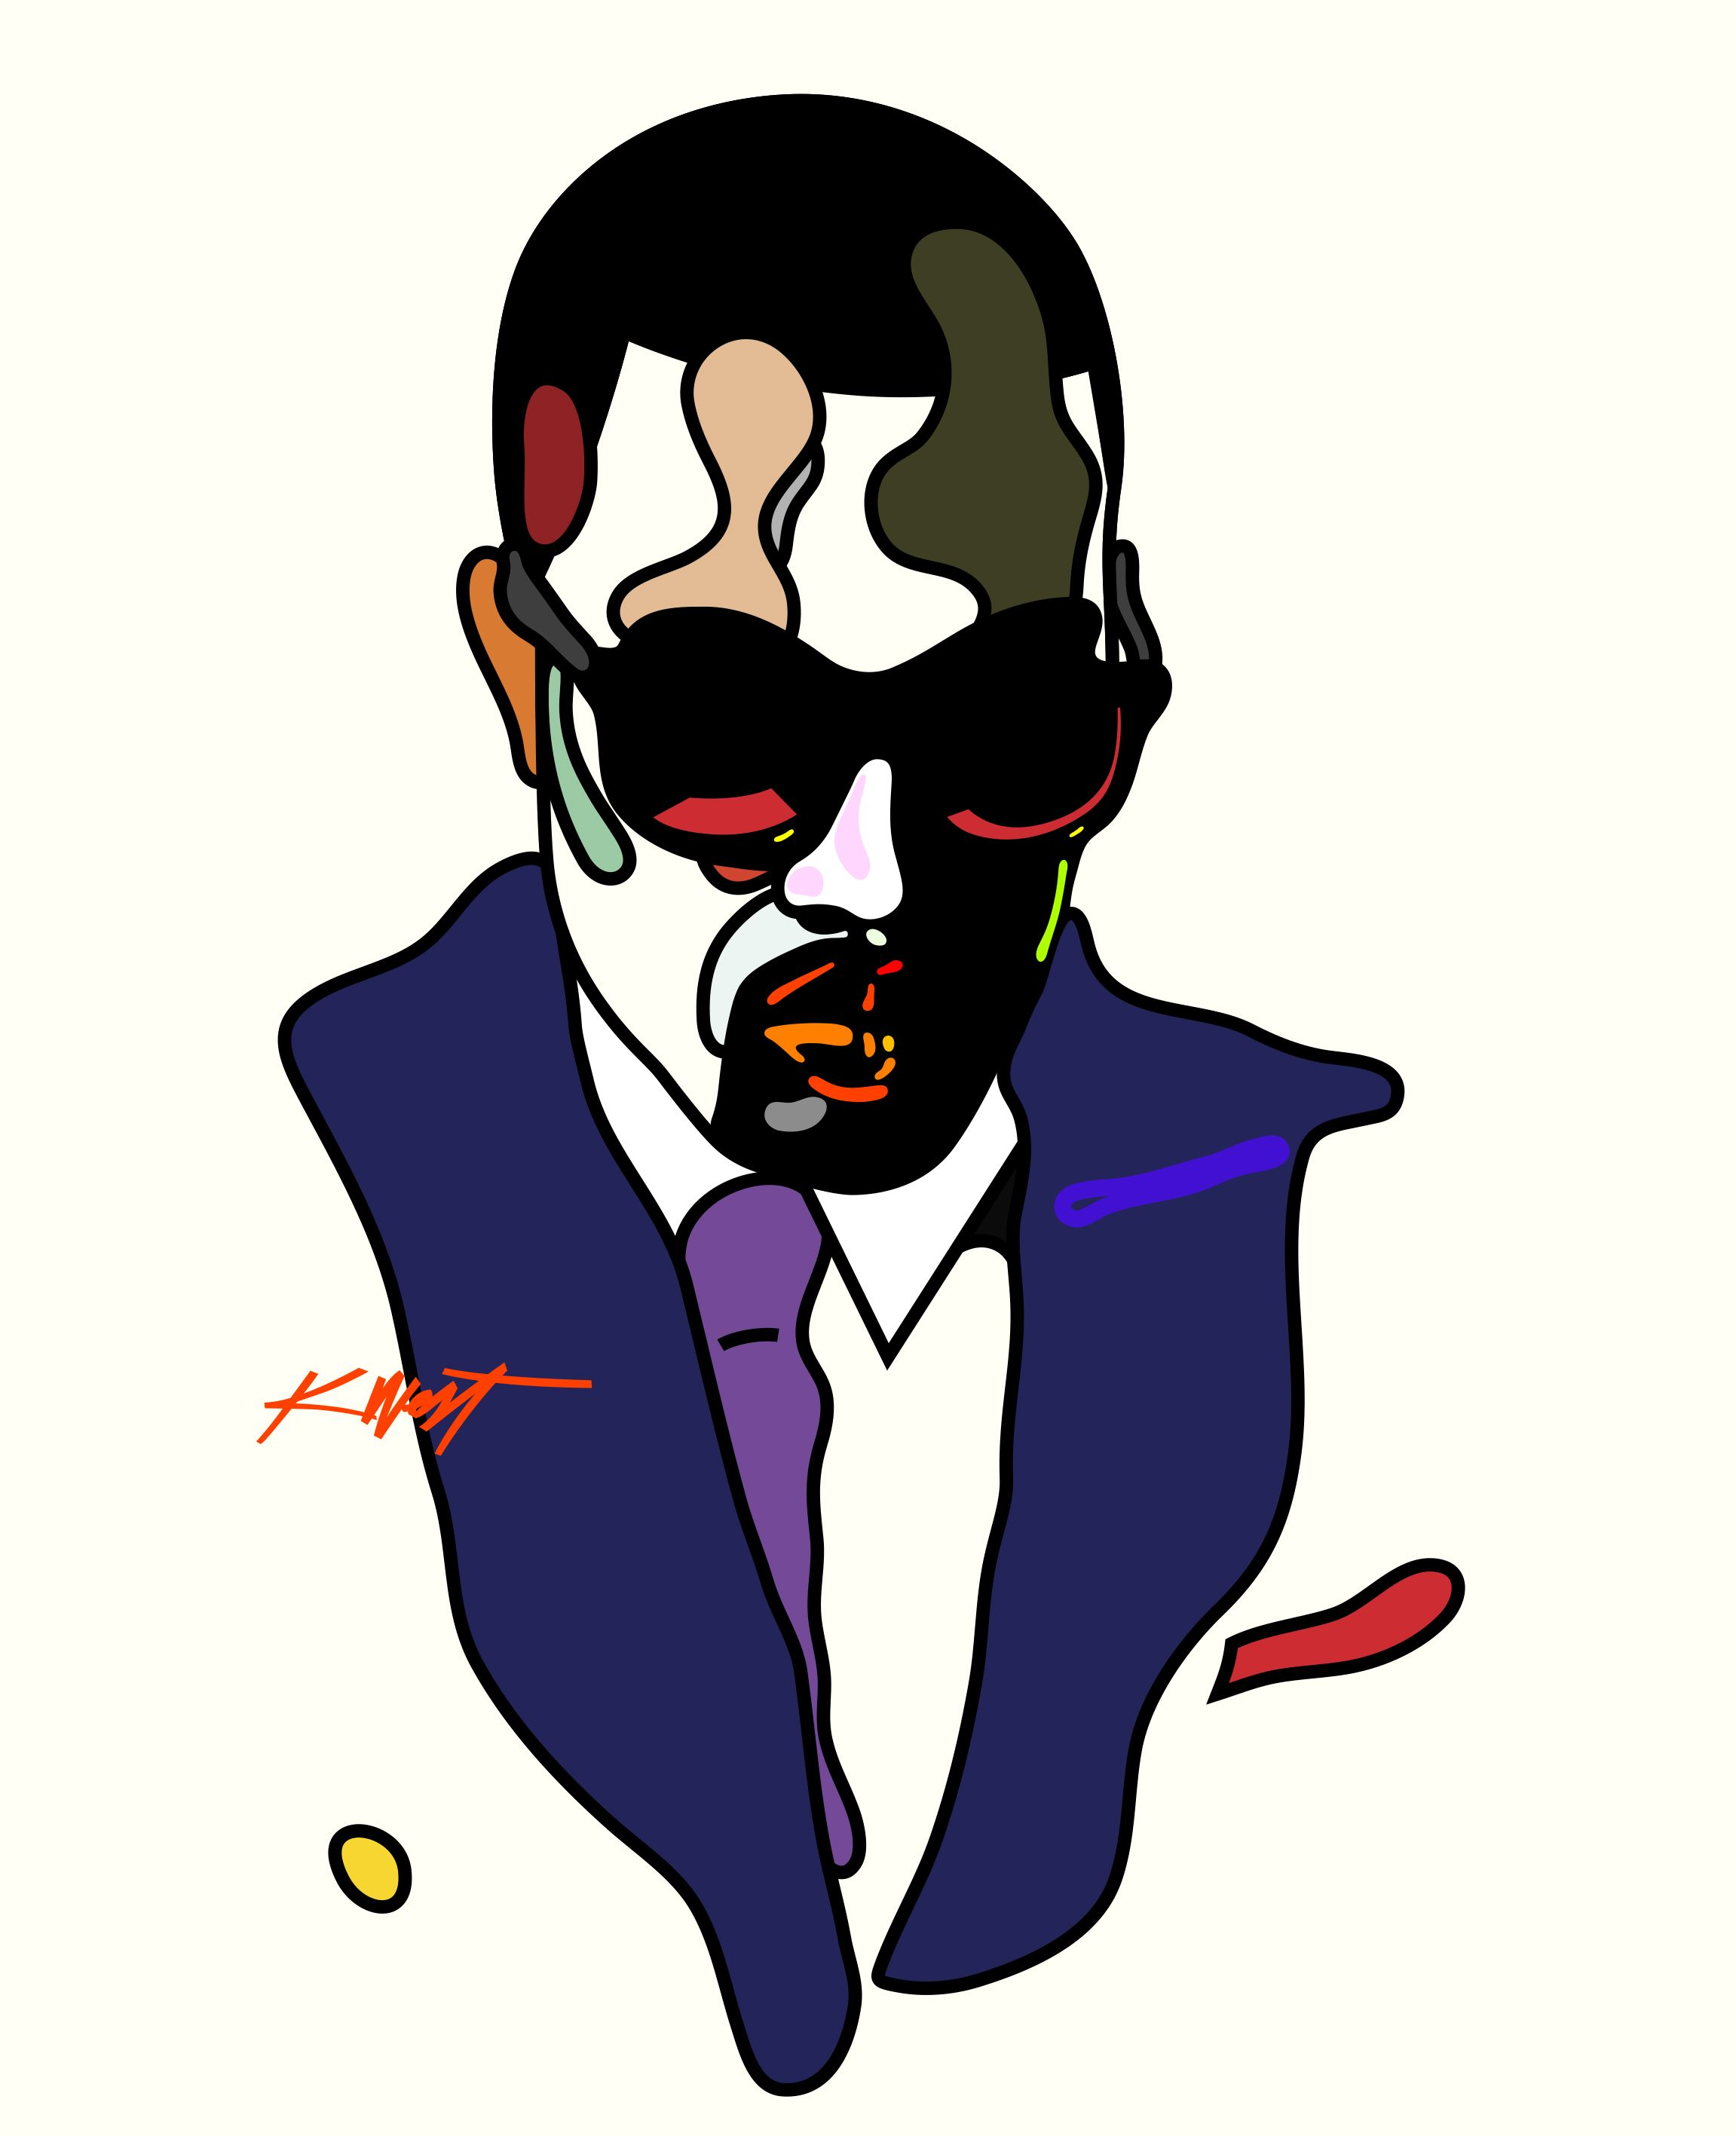 Kanye West from the Rap Face series. By Magnus Voll Mathiassen.